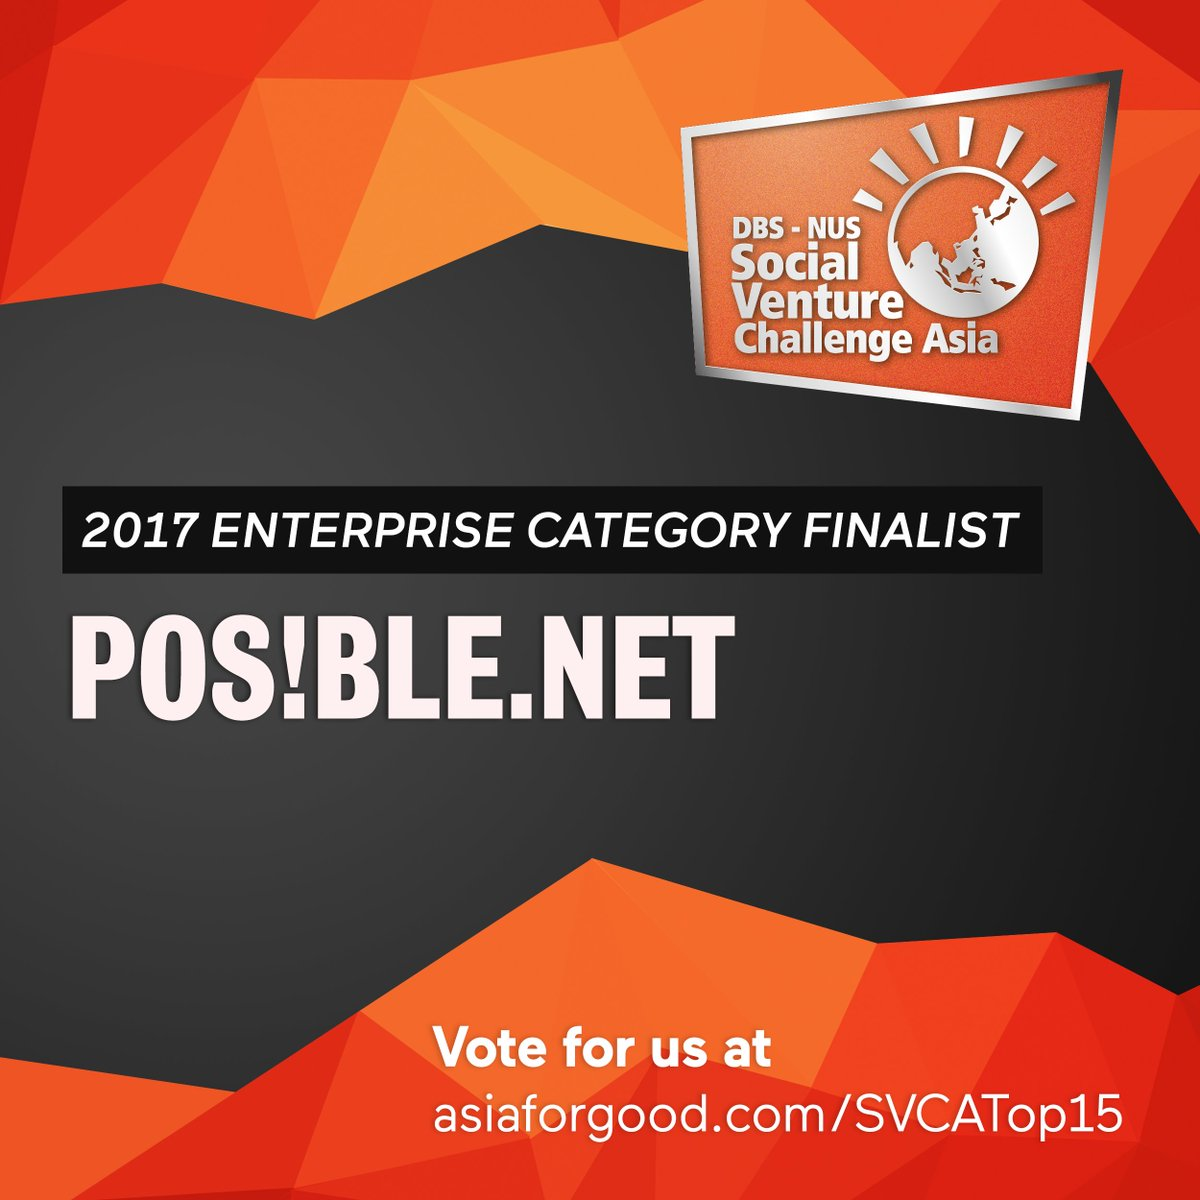 test Twitter Media - Change the banking system in Asia! Vote https://t.co/BFj9Gq9CB3 in Social Venture Challenge Asia Awards! https://t.co/qQx1NzsGyE #SVCA2017 https://t.co/1eLR0ah6iF